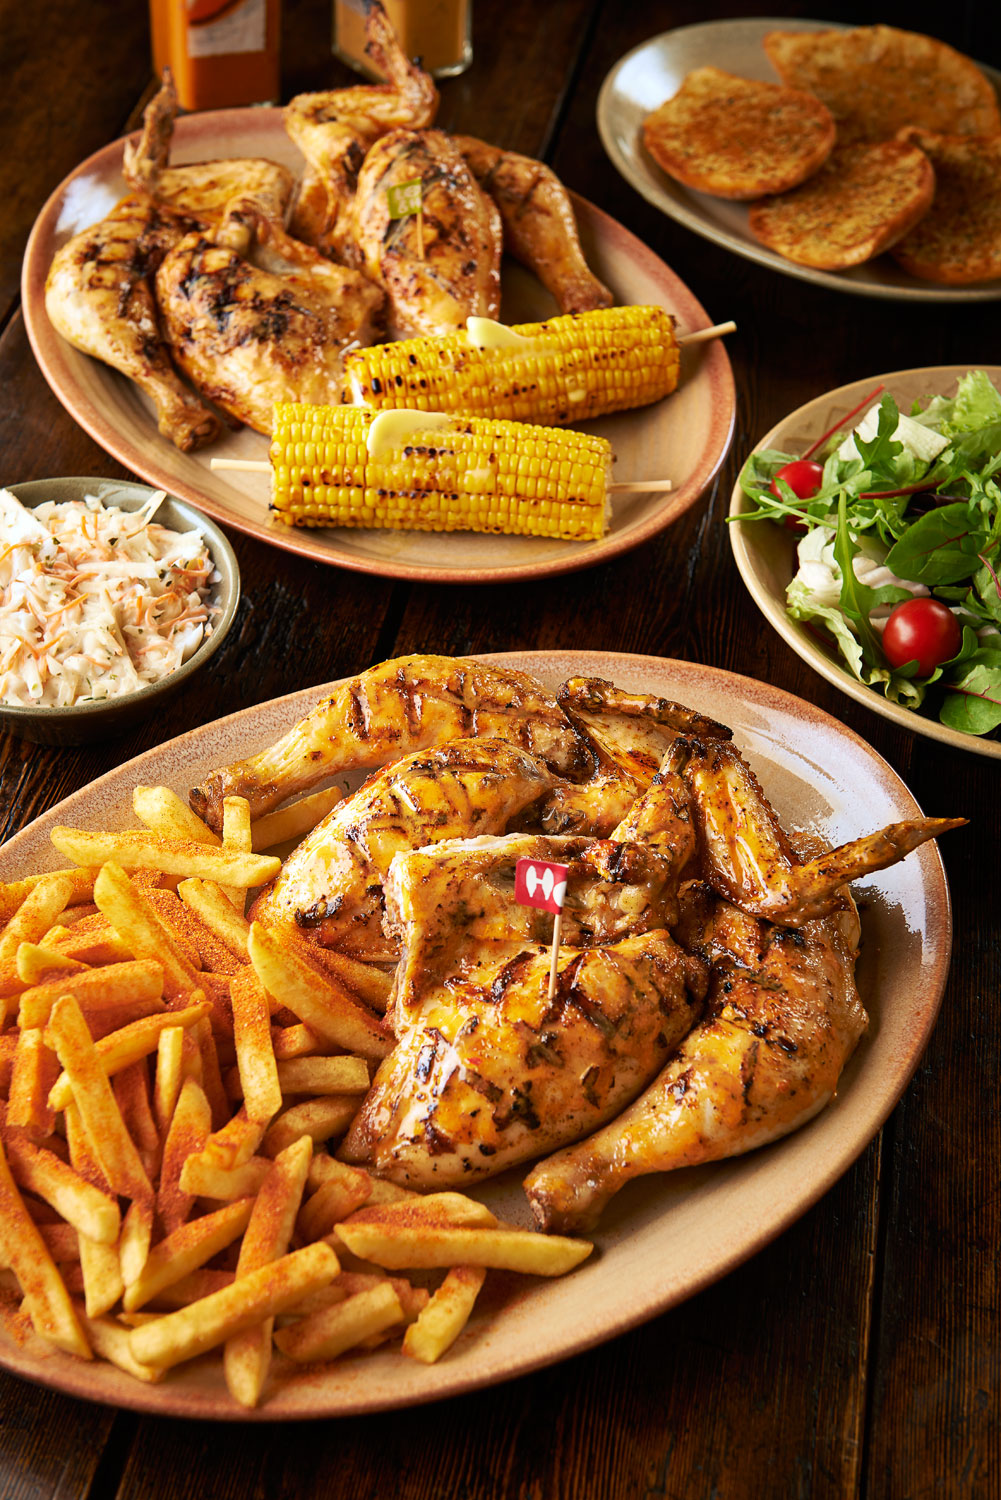 food photography london food photographer london recipe advertising cook book cook editorial packaging design graphic bold bright vibrant lighting lit flash photoshop still life photographer photography still-life still-life restaurant   dinner lunch breakfast meal cooking nando nandos nando's chicken  fried flame grilled flame-grilled fries fired chips peri peri whole half quarter flag coleslaw salad green tomato corn cob sweetcorn on the  garlic bread corn on the cob sauce mango lime lemon and herb lemon & herb hot